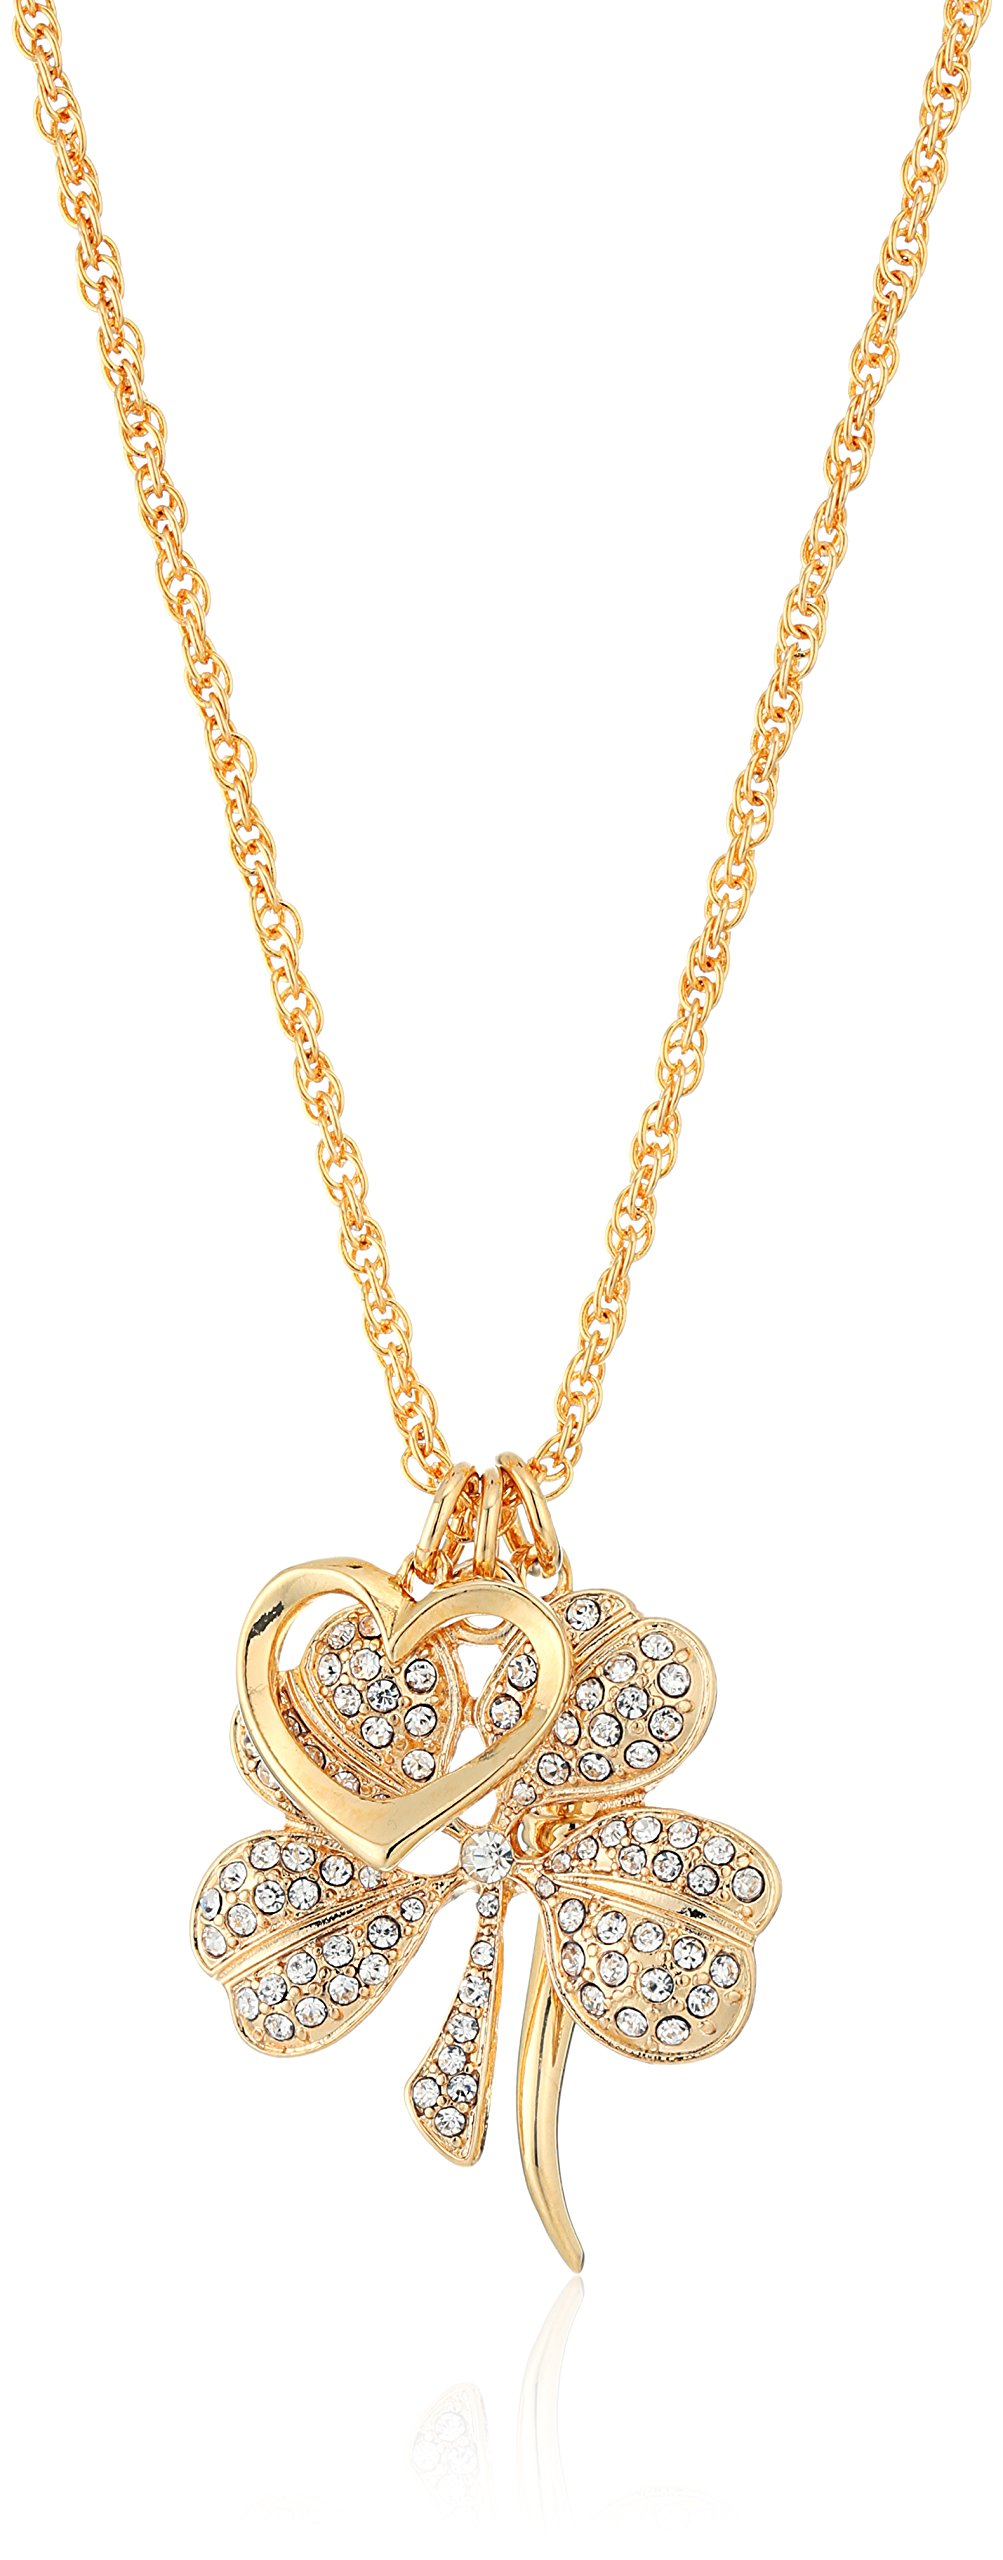 Kenneth Jay Lane Gold and Crystal Multi Charm Pendant Necklace, 33''